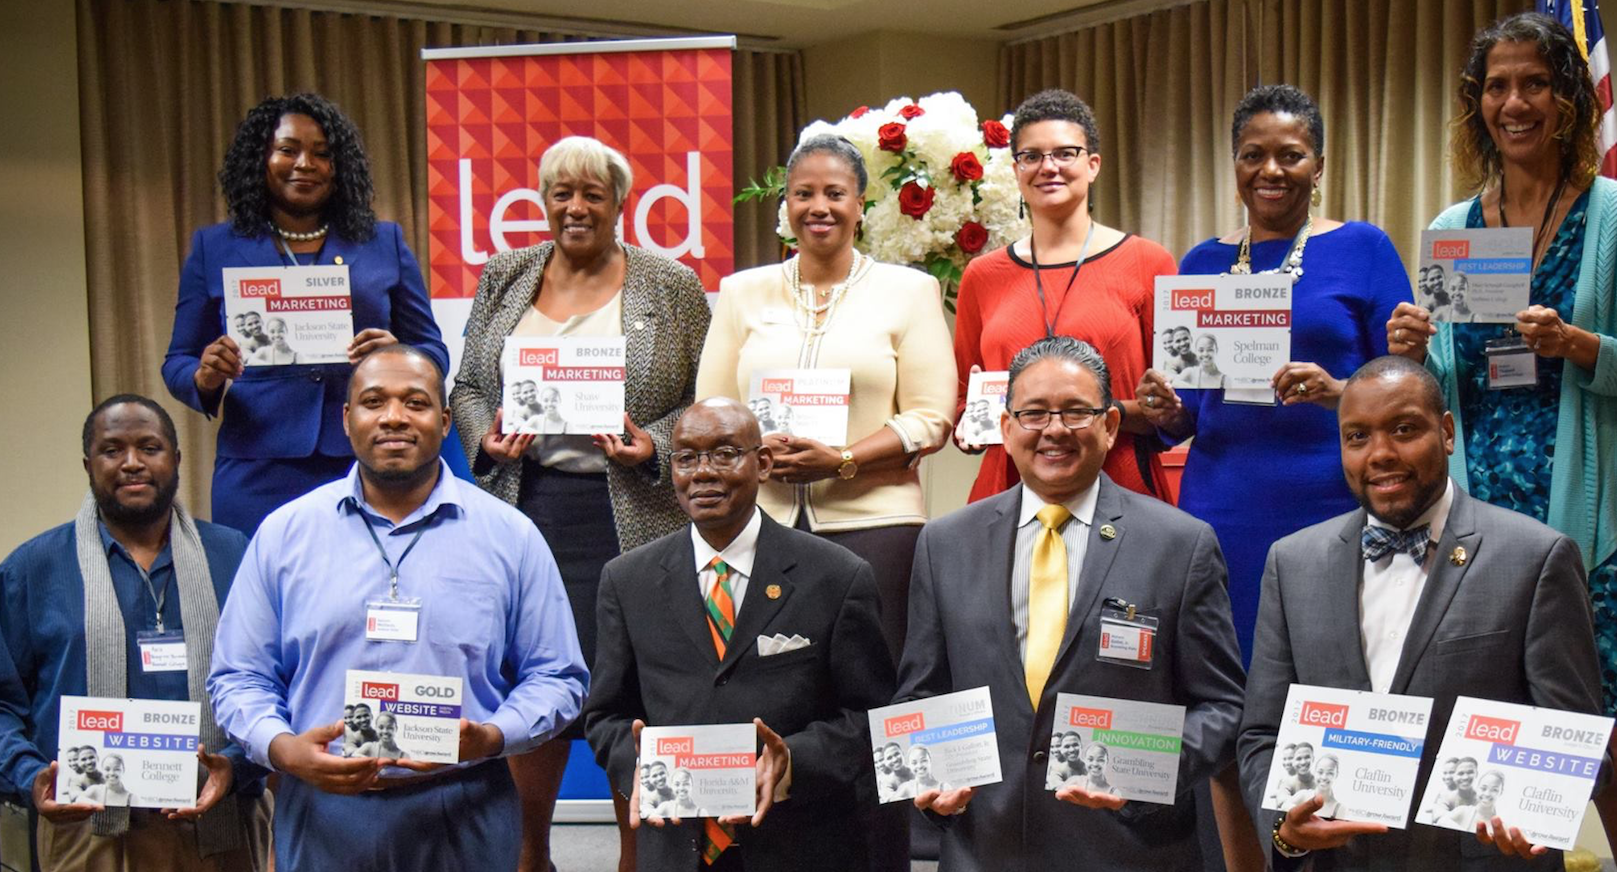 Recipients gather to showcase their HBCUgrow LEAD Awards.